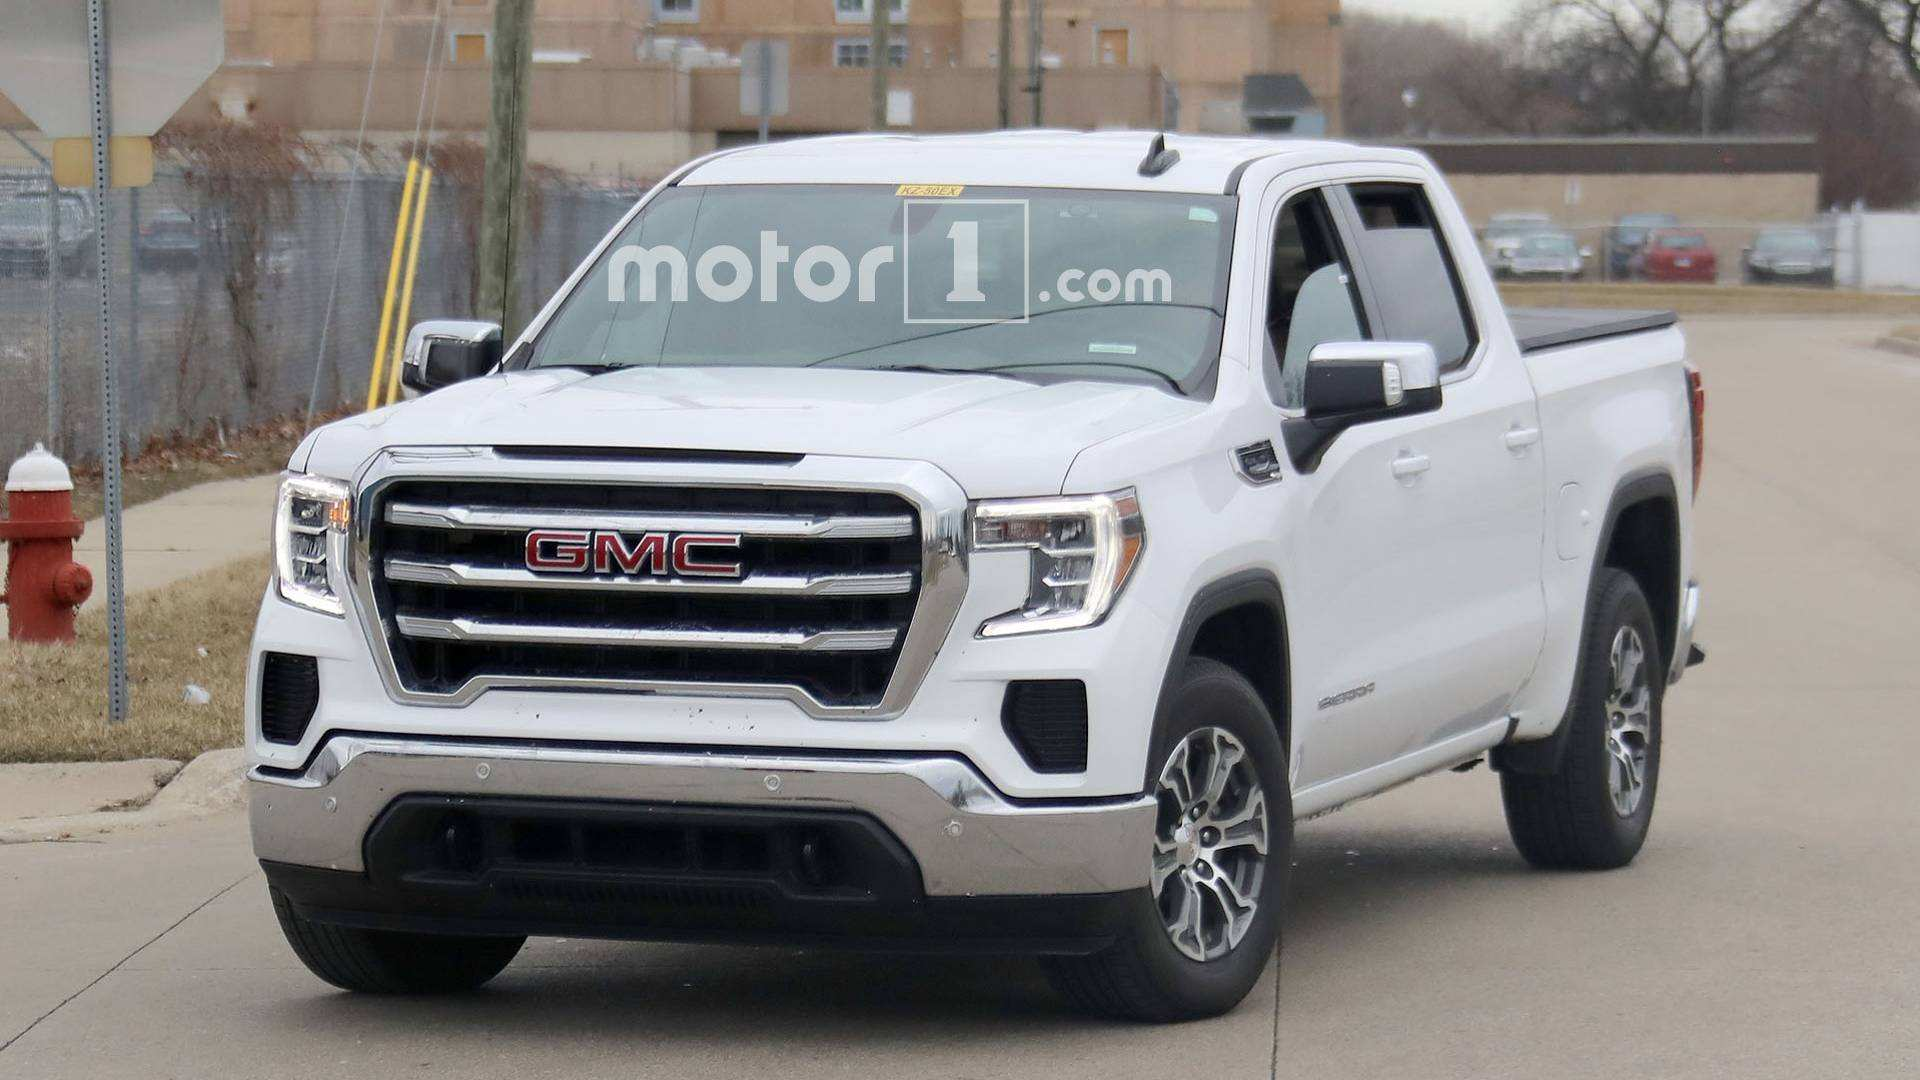 95 All New 2019 Gmc Pickup Release Date Specs and Review with 2019 Gmc Pickup Release Date